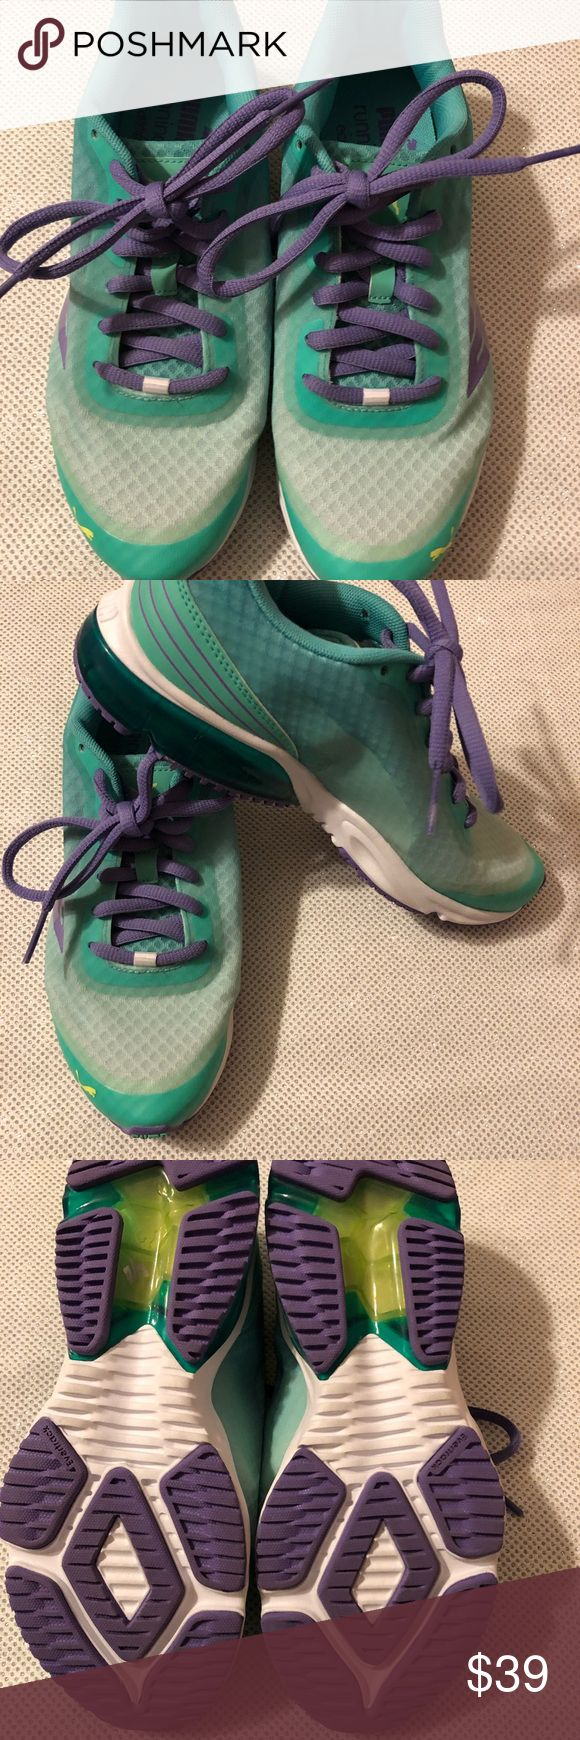 PUMA Tennis Shoes PUMA Tennis Shoes                                      SIZE:8 CARE:Machine Wash Cold CONDITION:Preowned, Excellent condition  • Ships only within US. • From a smoke and pet free   environment. • Please feel free to ask me any questions. Puma Shoes Athletic Shoes #tennisshoes